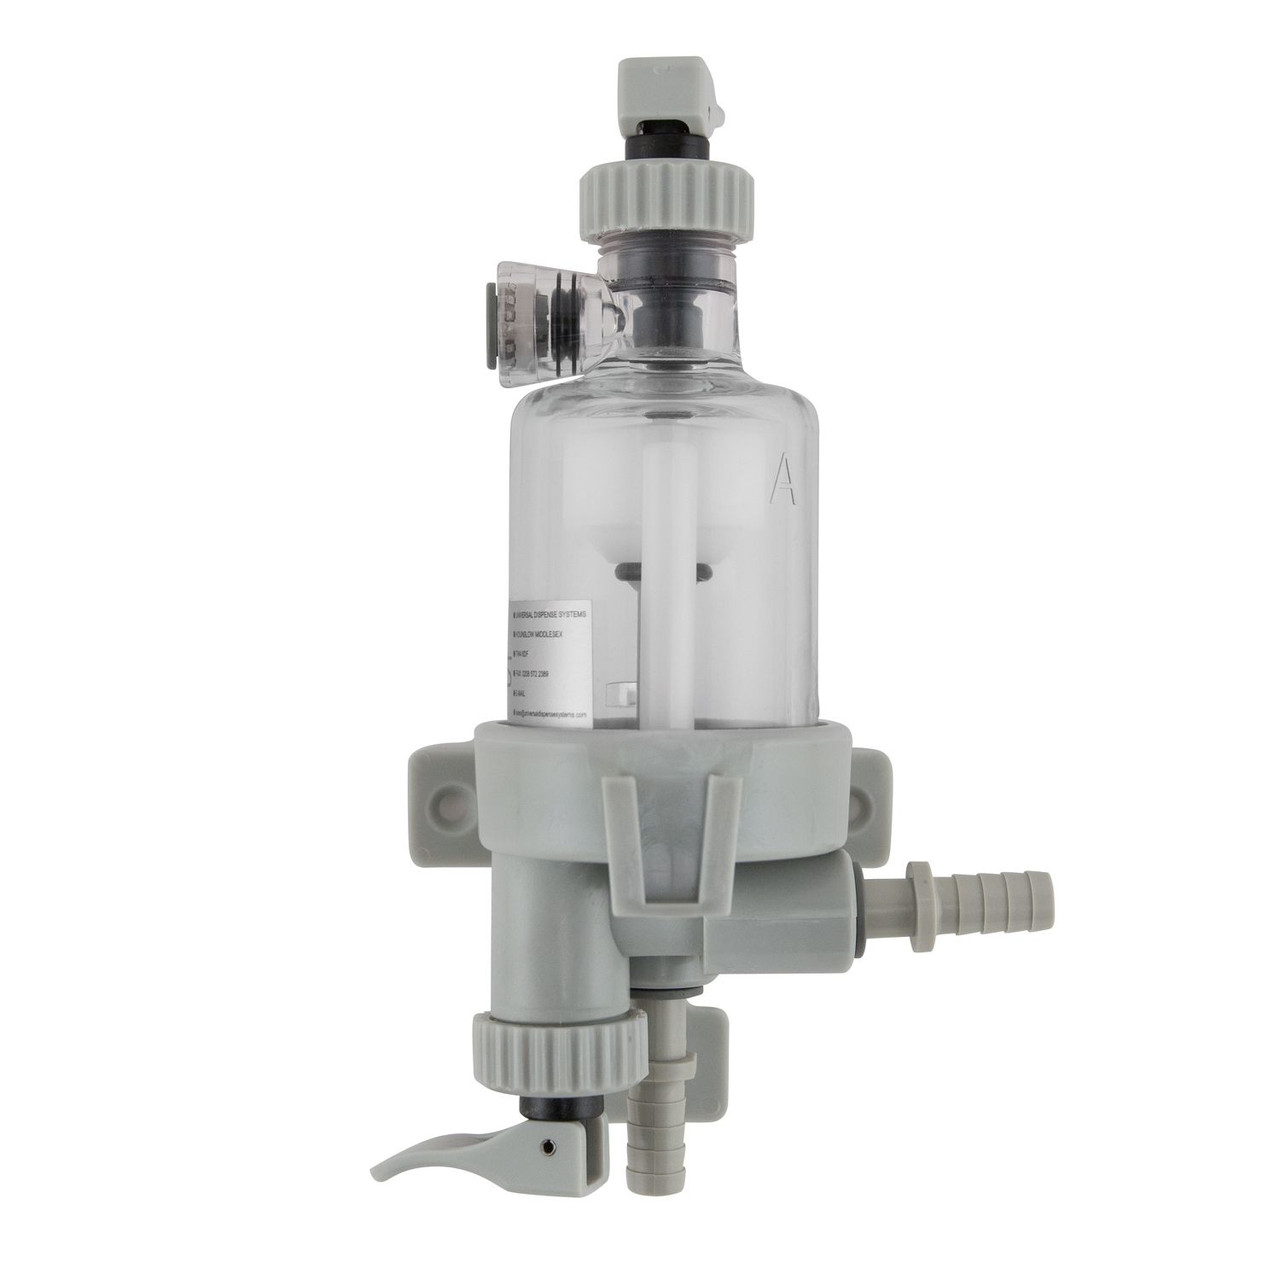 etc... Details about  /Flojet Beer Pump on Perlick Panel System with FOB Detectors